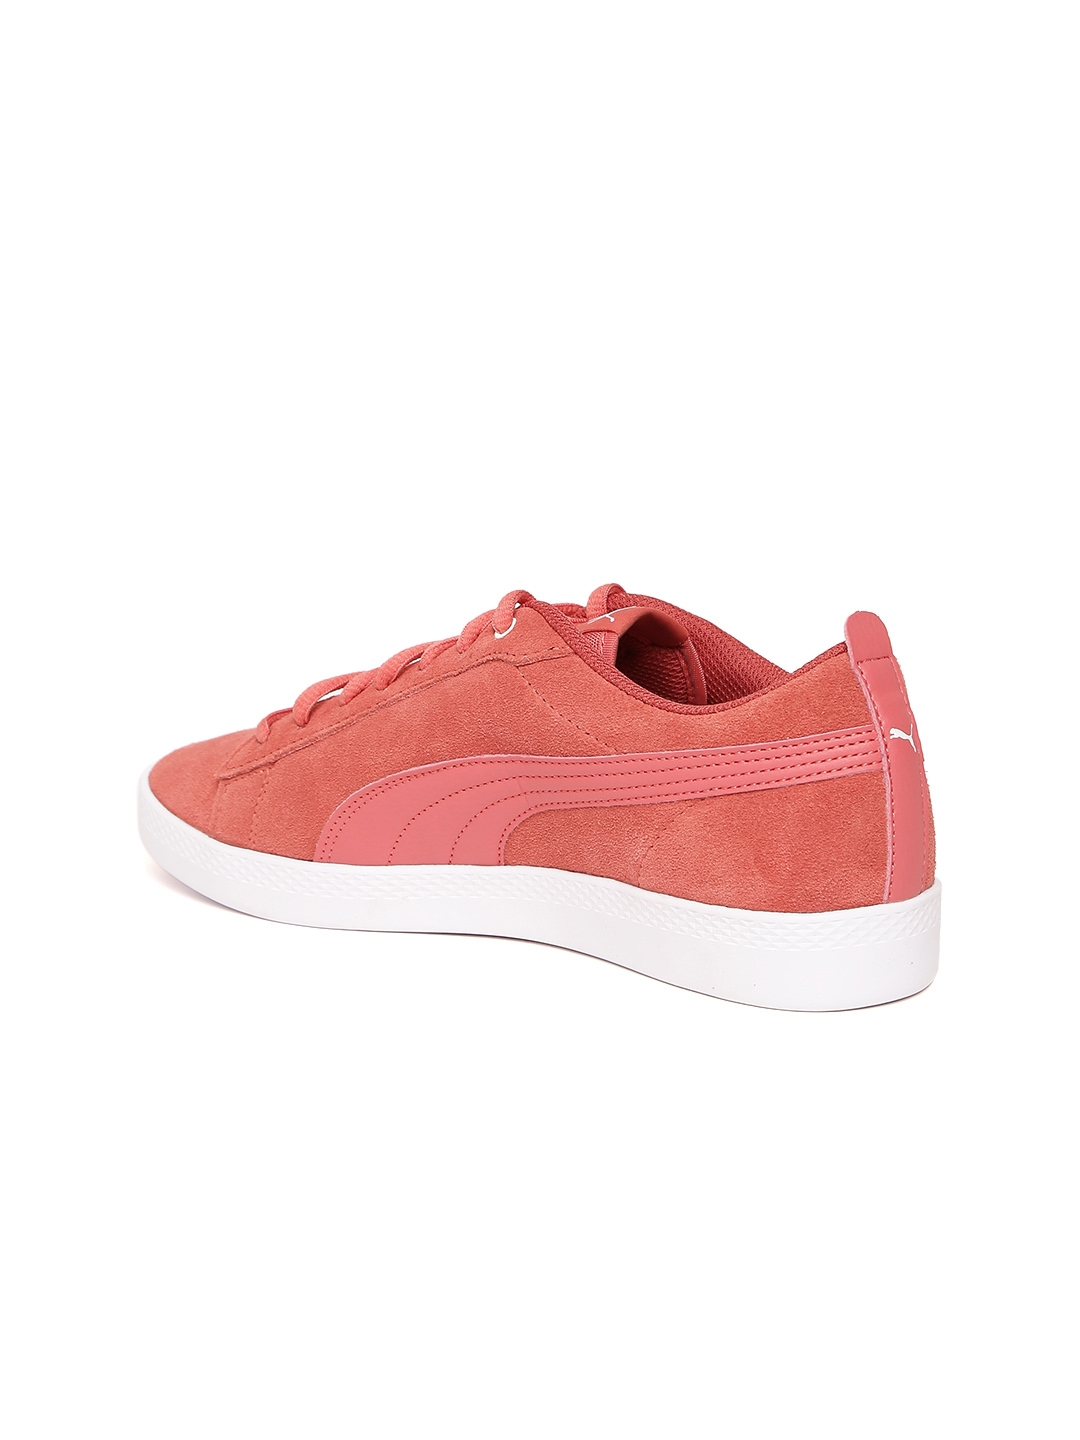 80ff0e1f206 Buy Puma Women Coral Pink Smash V2 Suede Leather Sneakers - Casual ...